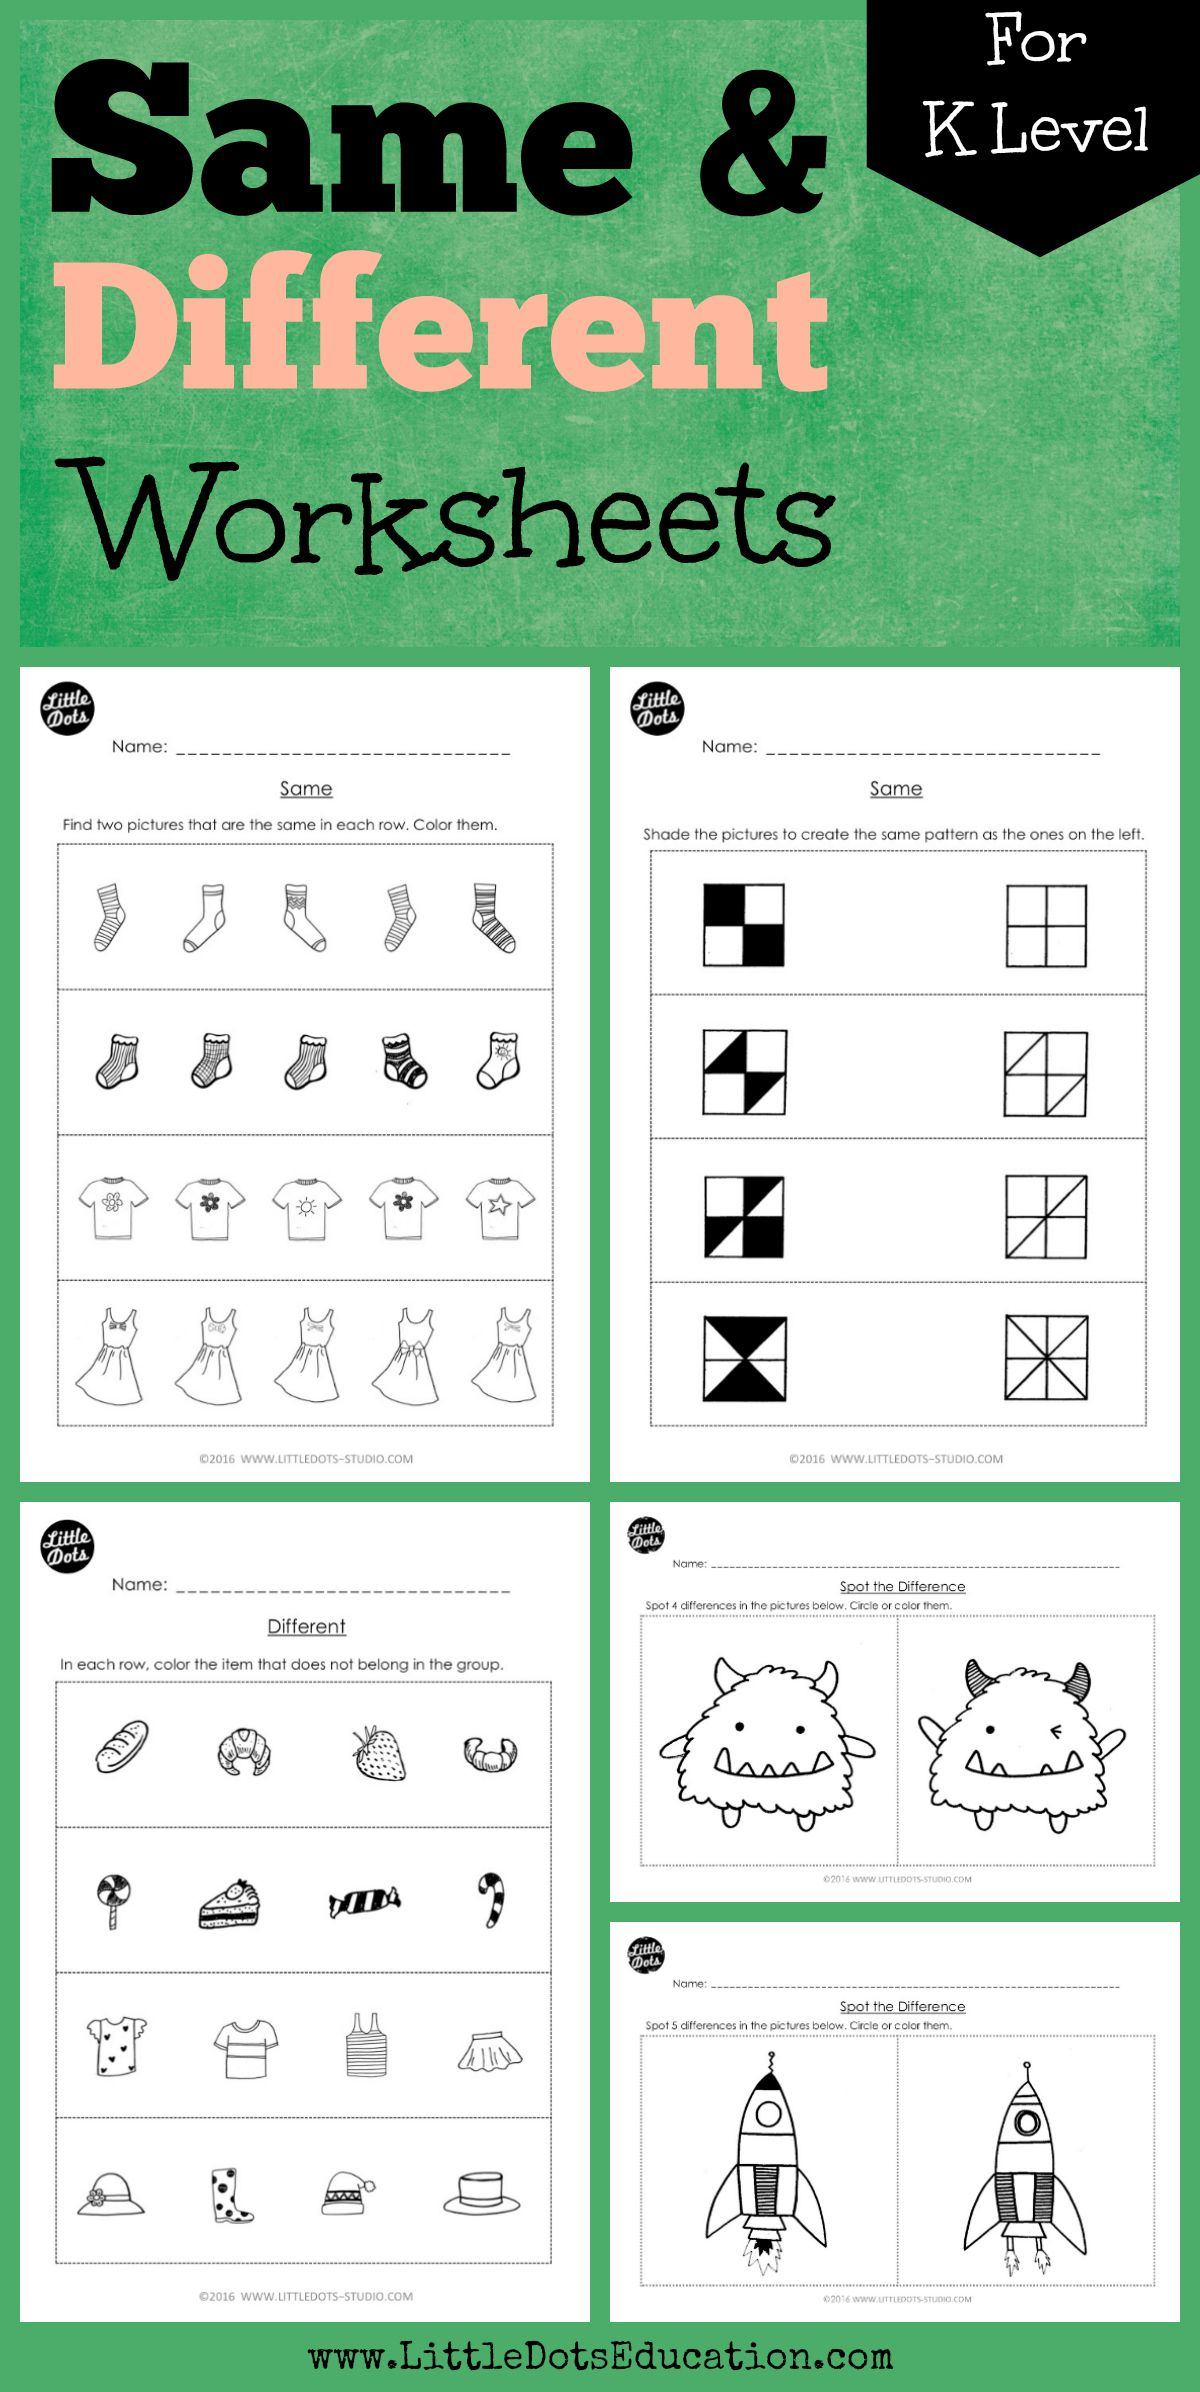 Download worksheets and activities to teach the concept of same and ...